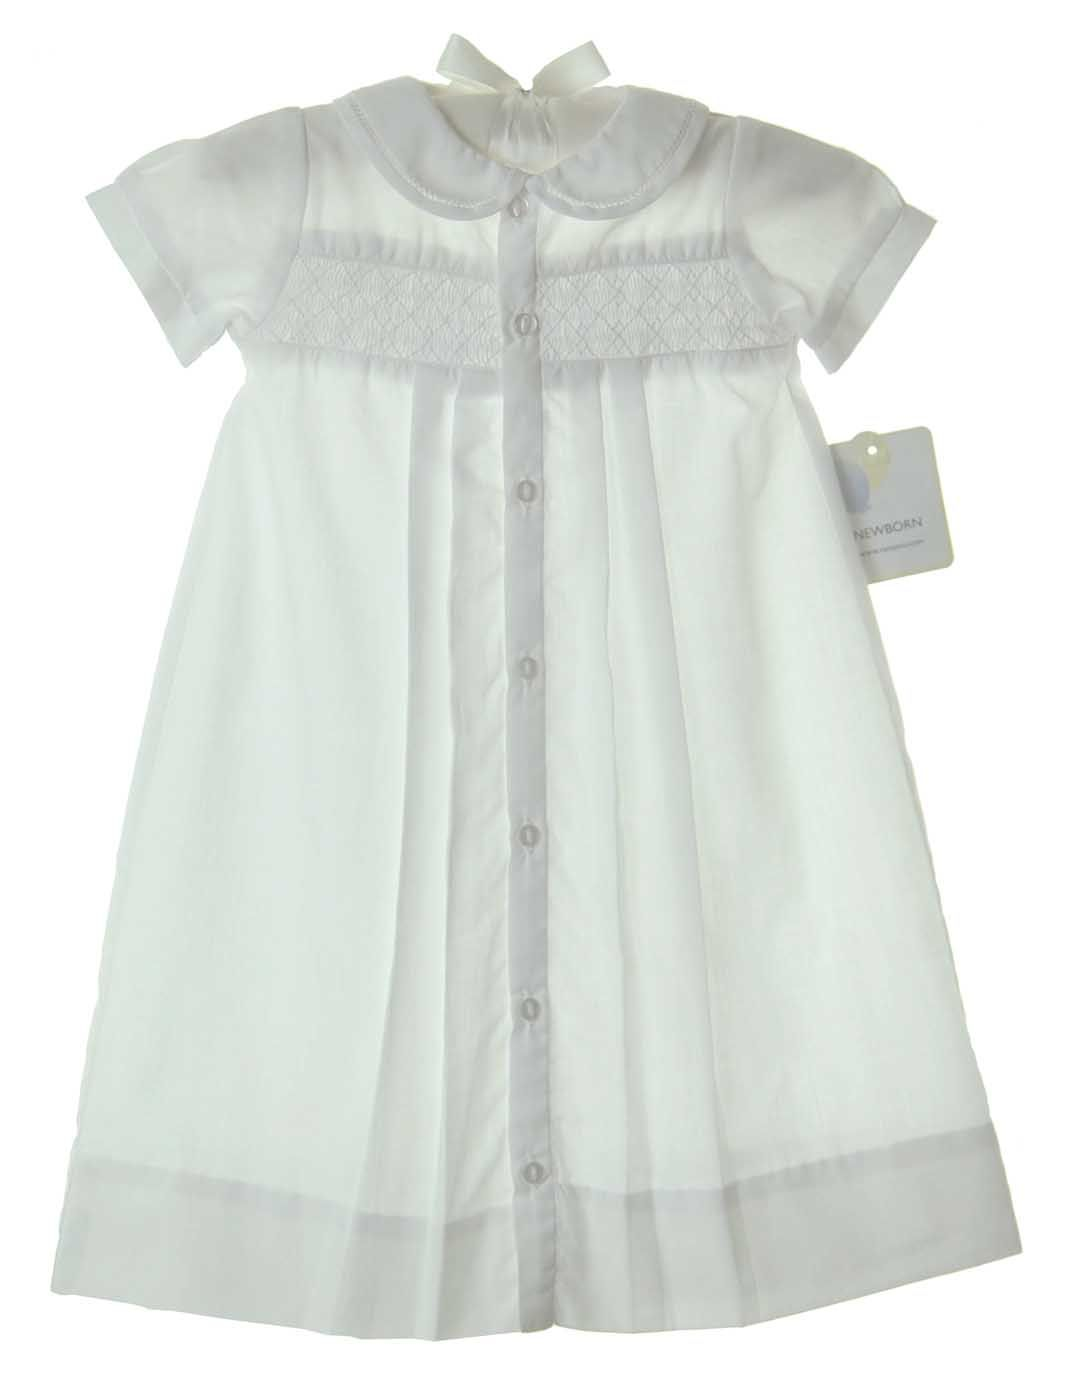 NB Feltman Brothers Baby Boy White Daygown with Blue Embroidery